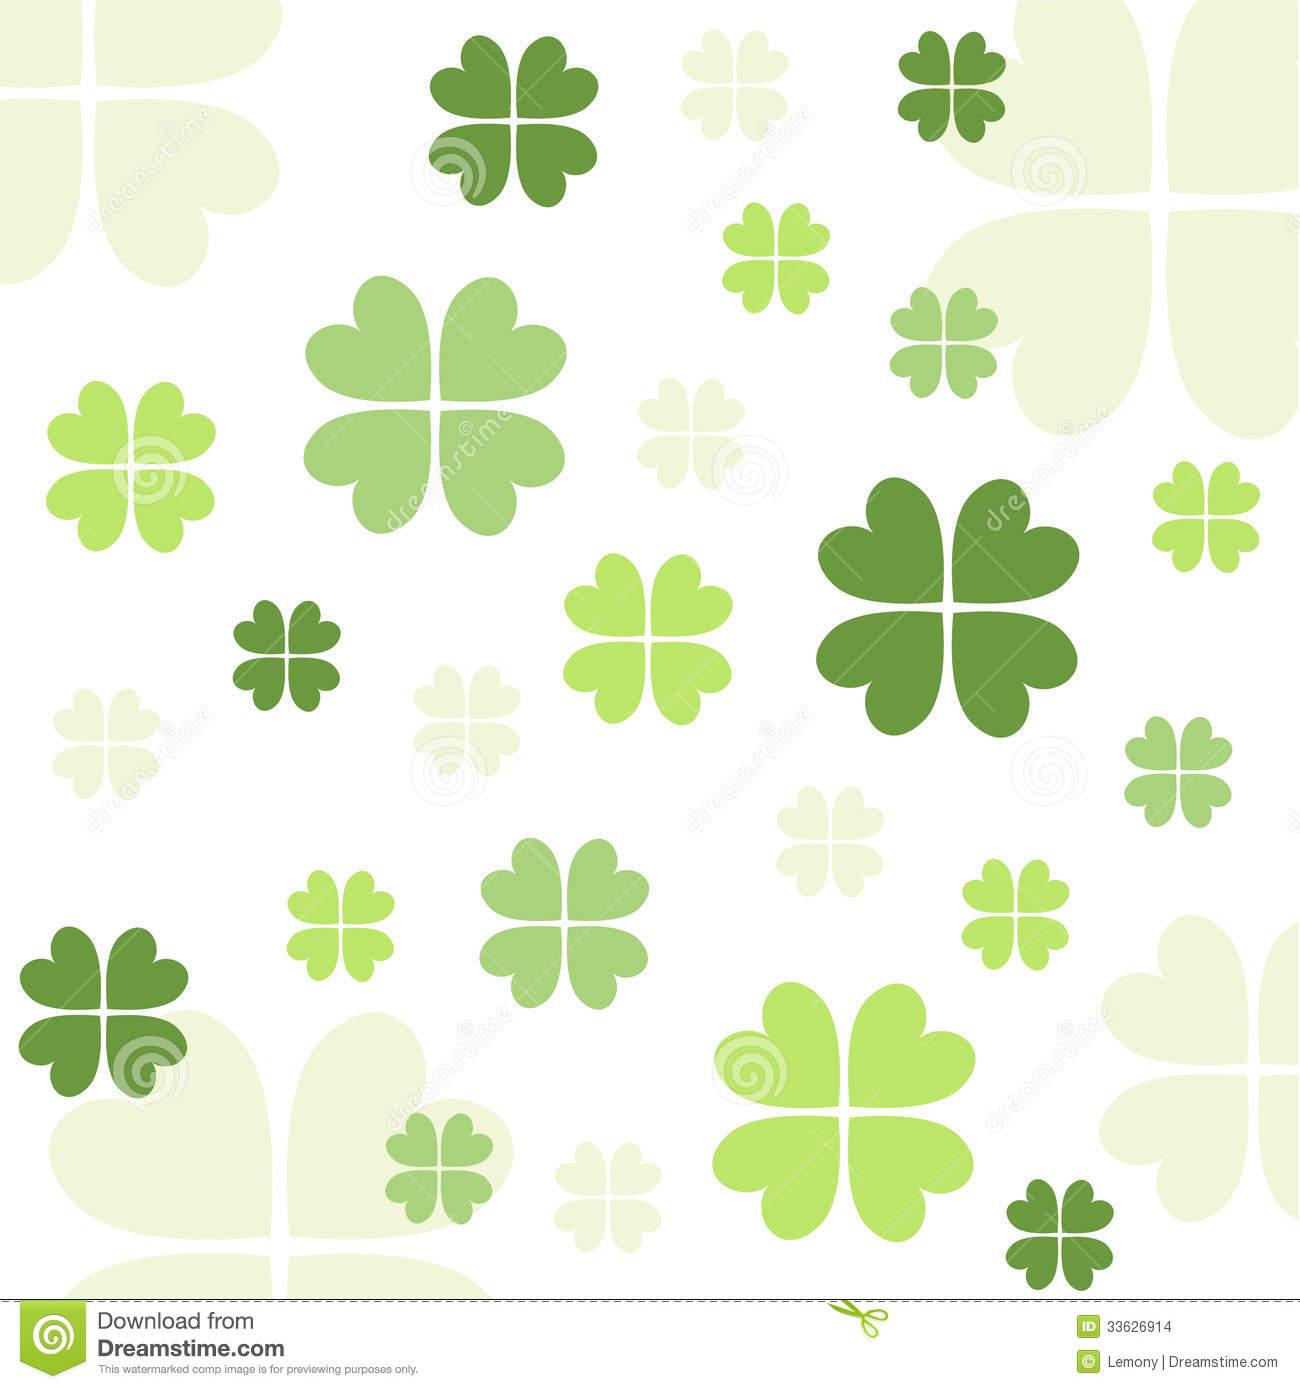 shamrock pattern wallpaper 1366x768 - photo #22